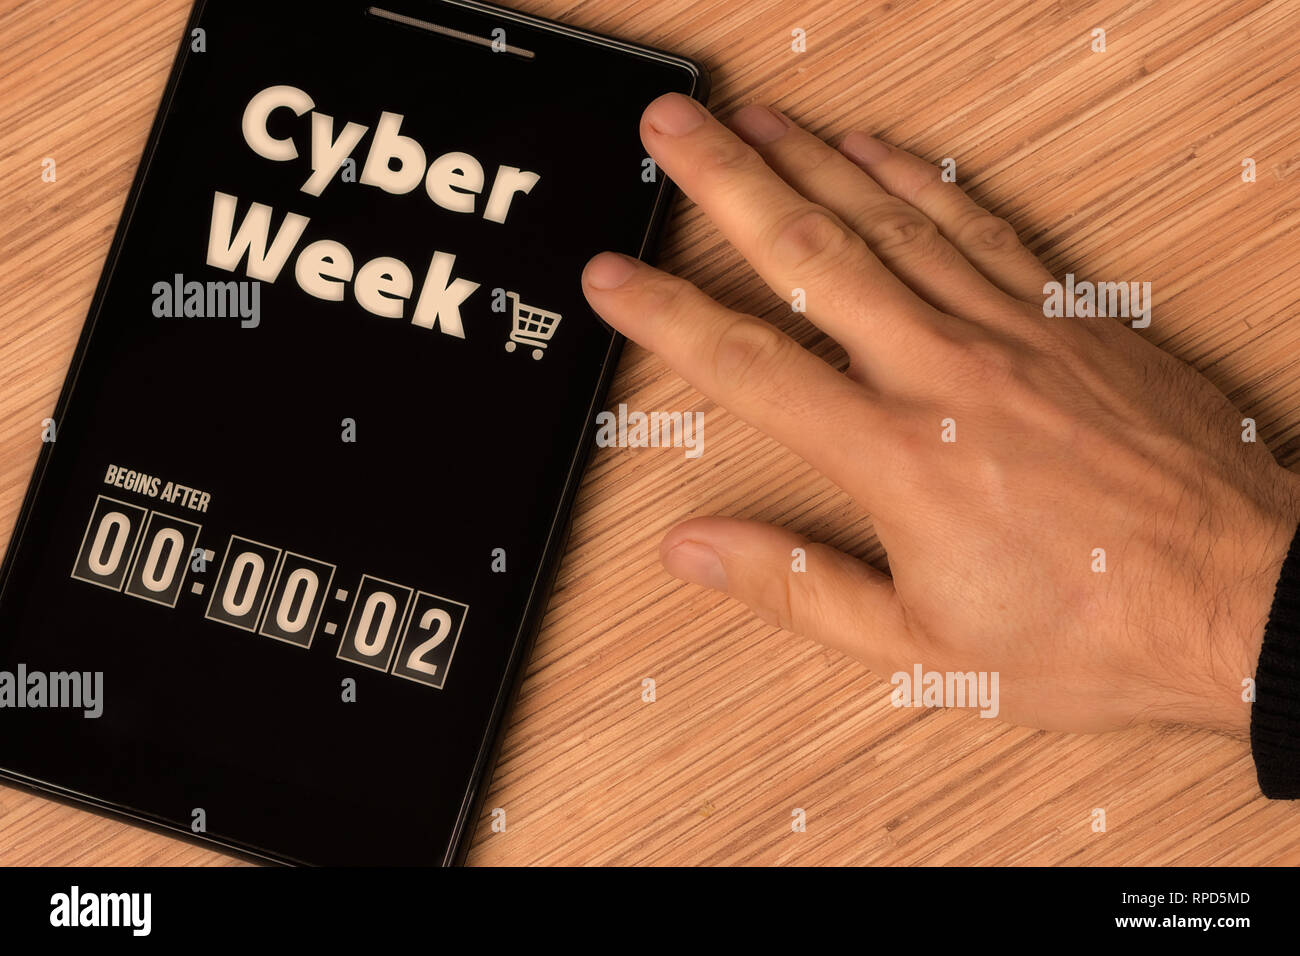 Cyber Week begins after - Stock Image